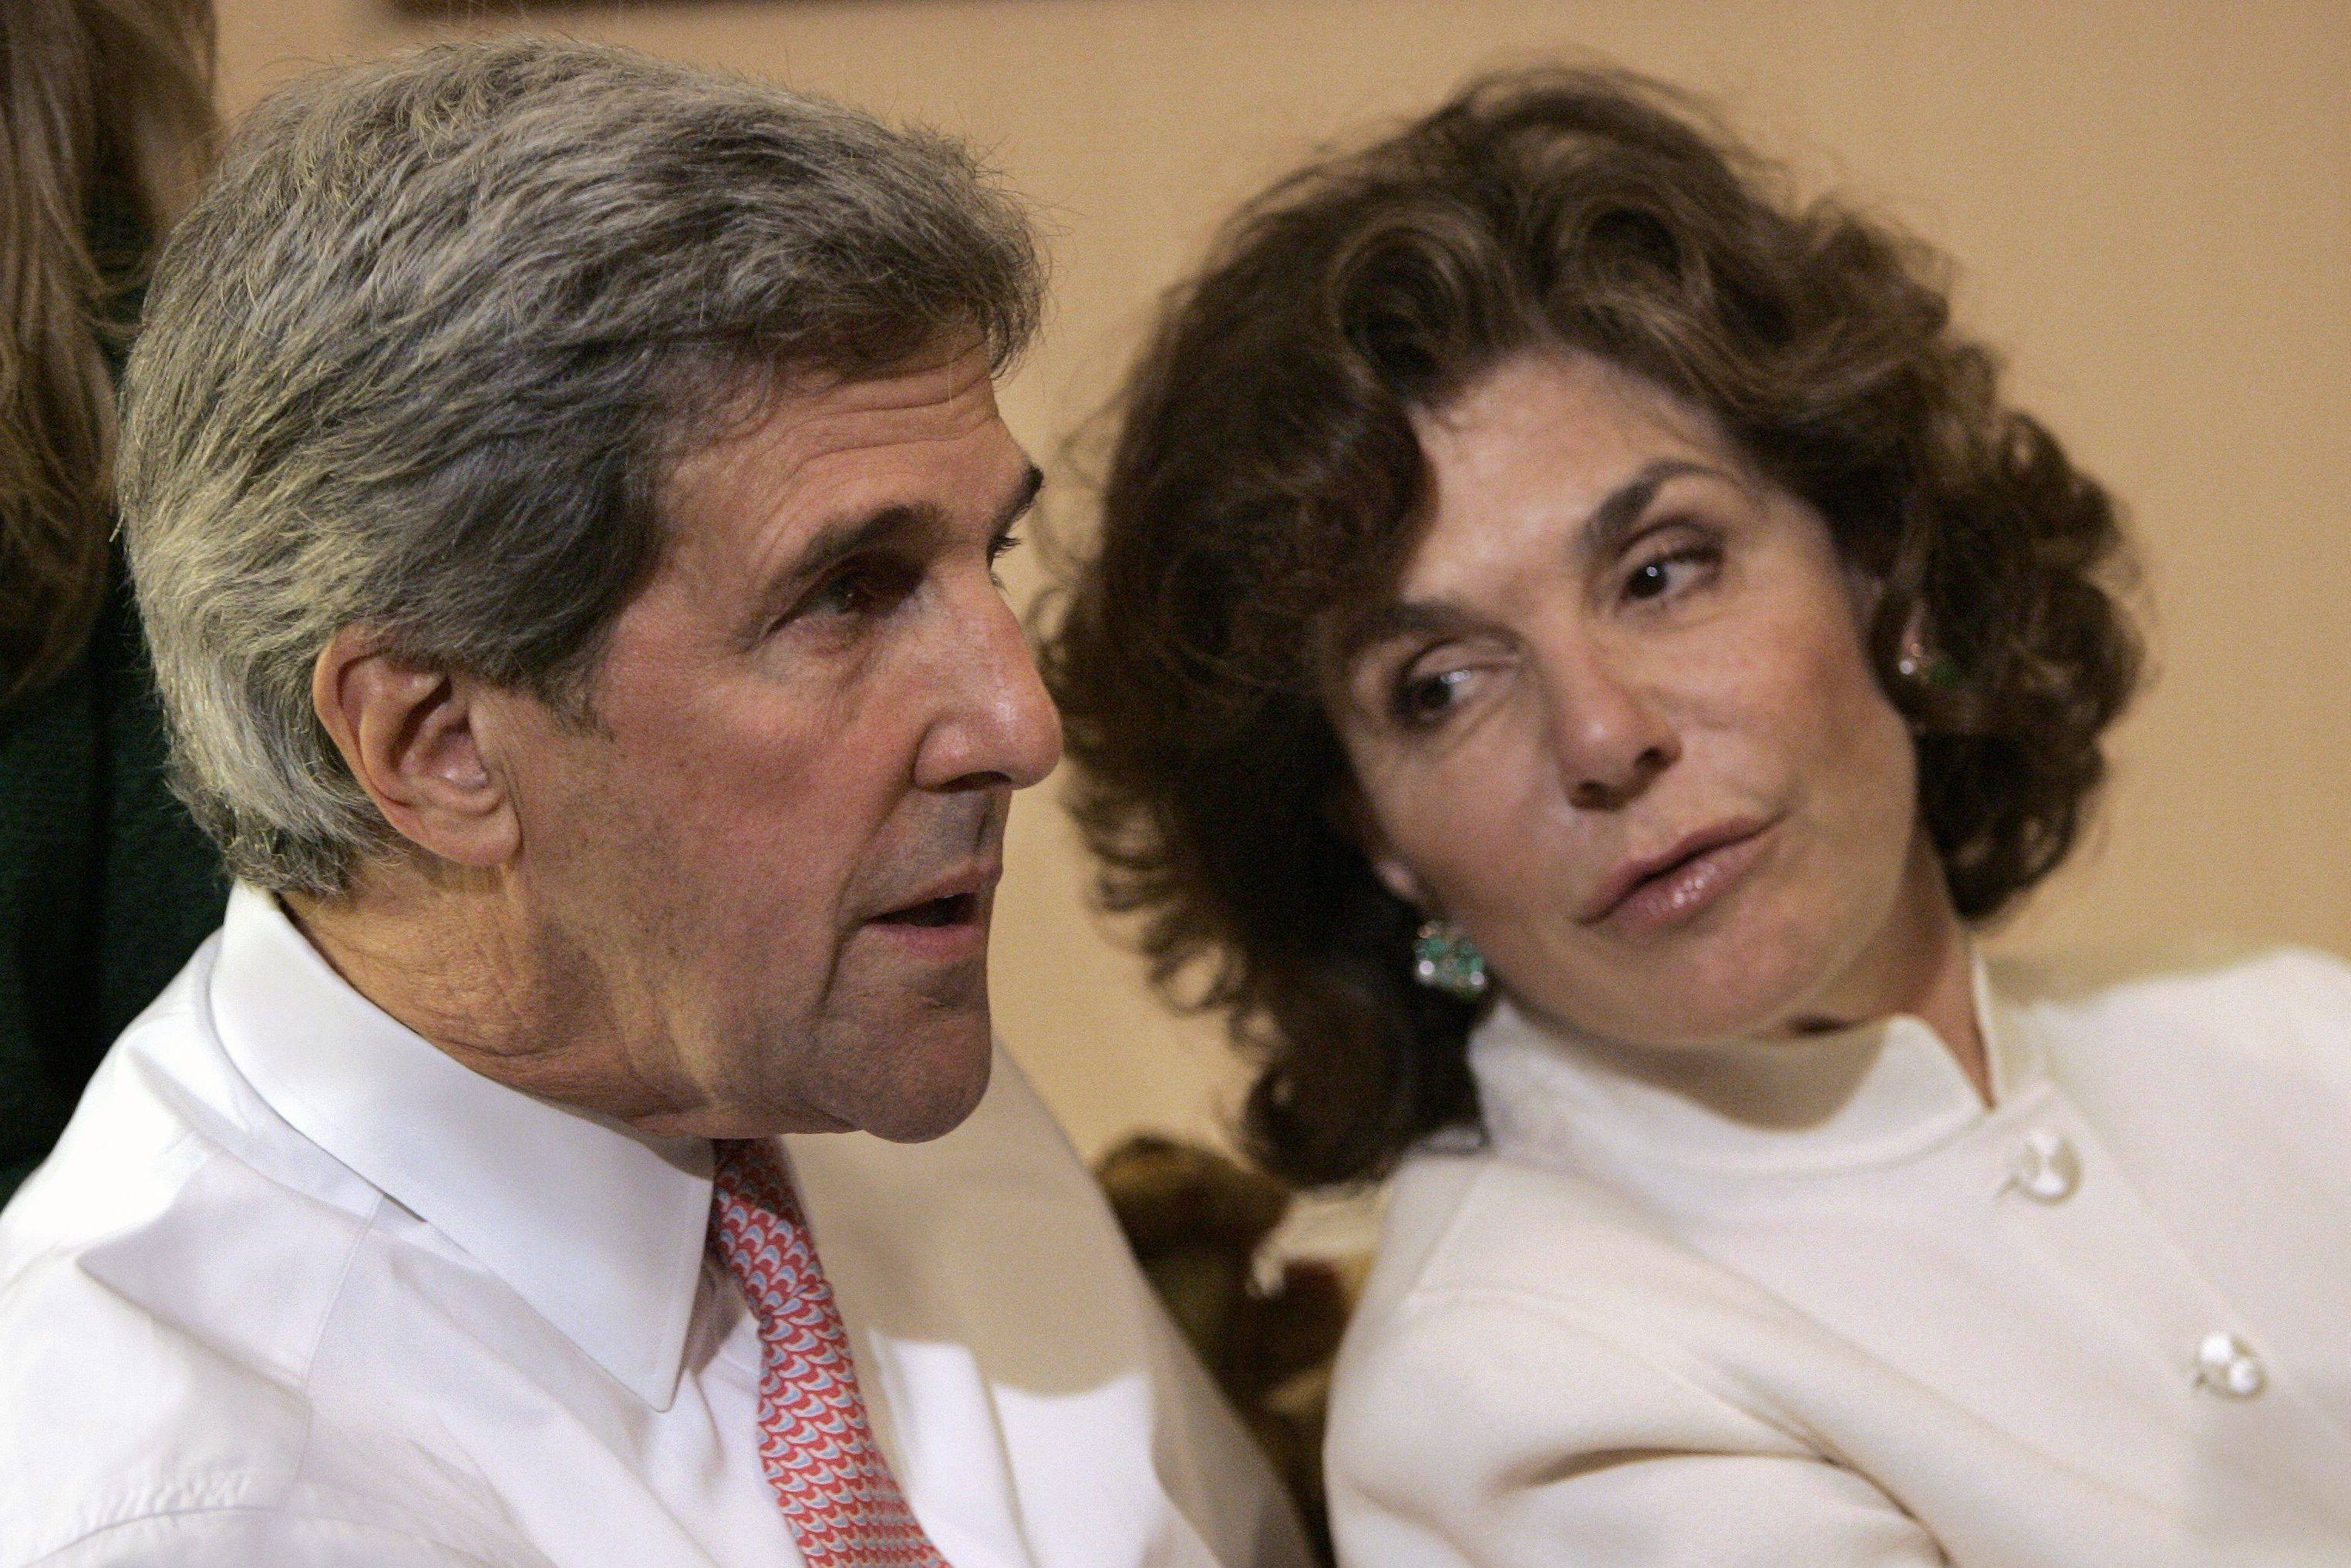 John Kerry is seen with his wife, Teresa Heinz Kerry, in 2008. Teresa Heinz Kerry was hospitalized Sunday in critical but stable condition.